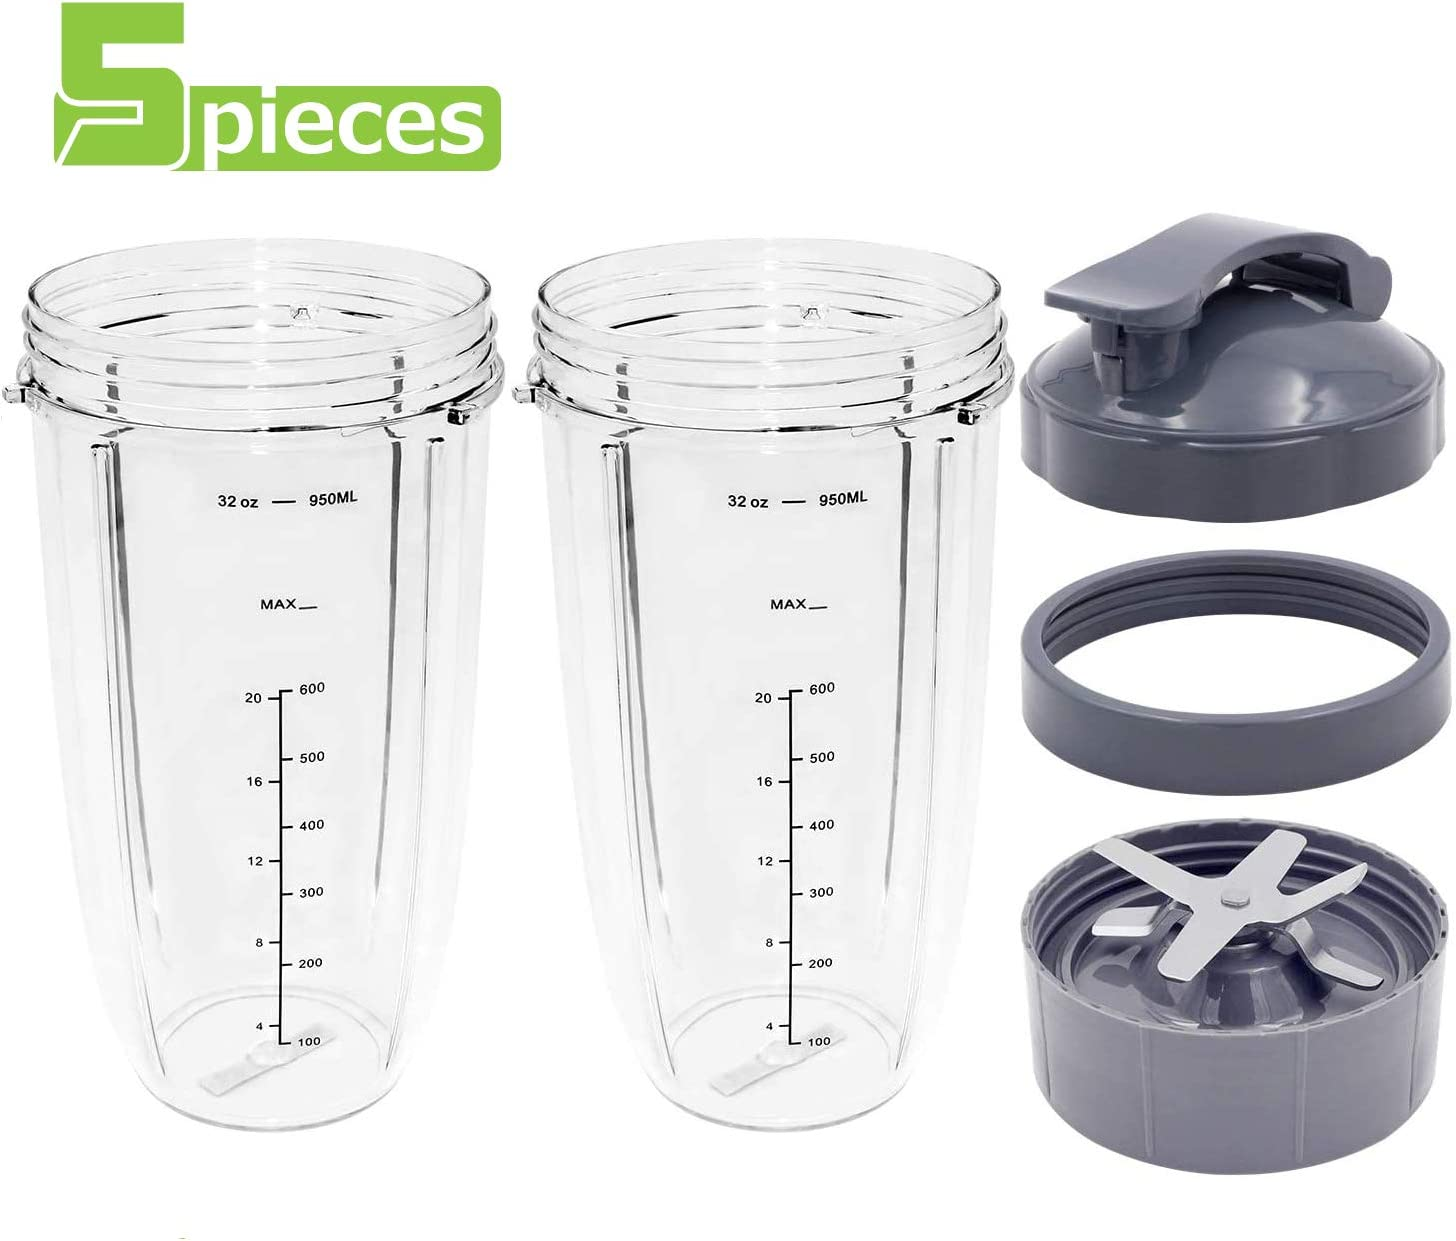 SUPTEMPO Blender Cups and Blade Replacement,2 PCS 32 Oz Cups with 1* Seal Lid & 1* Screw-Off Lip Ring &1* Premium Extractor Blade Compatible with Nutribullet 600W/900W Models[5 Pieces]